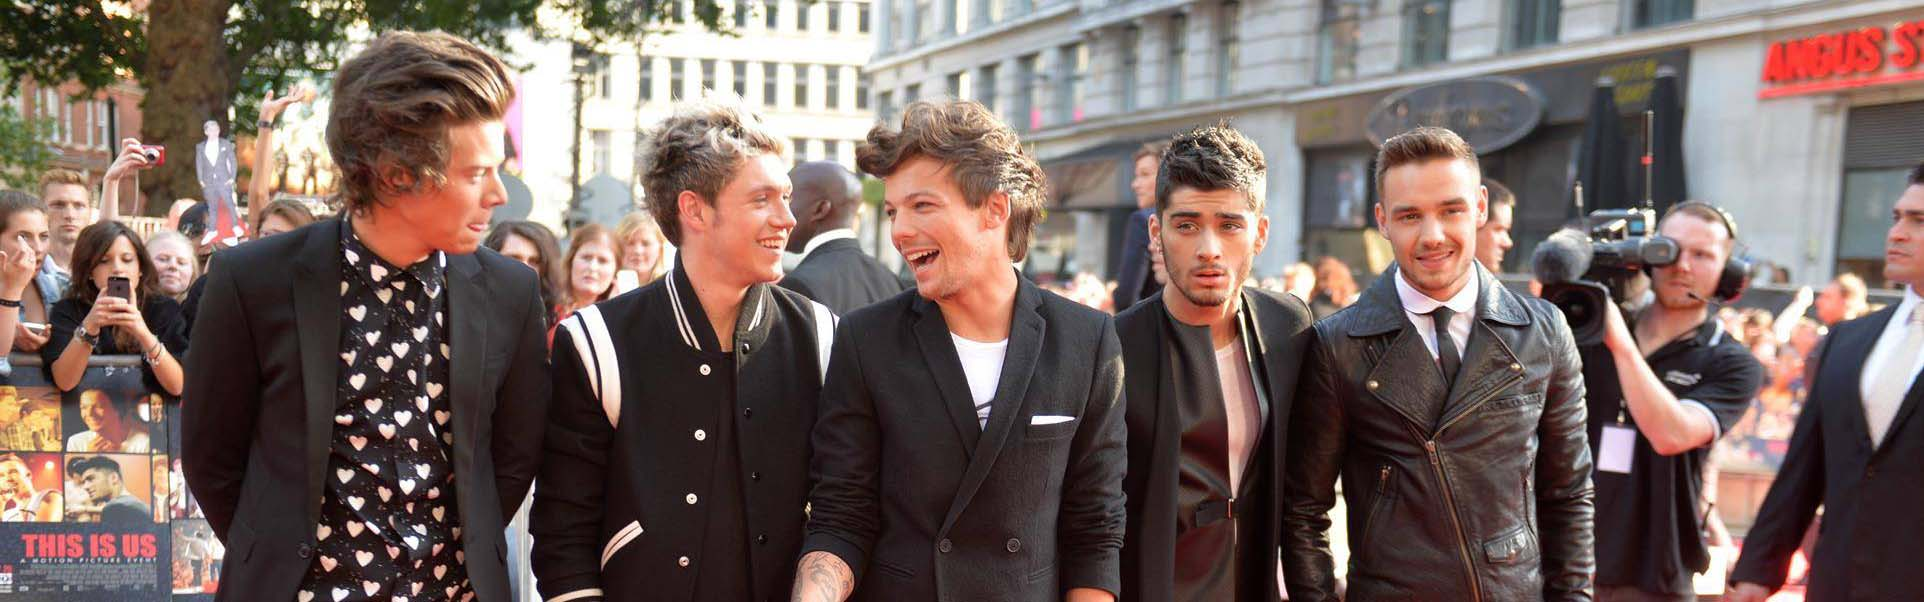 One direction header